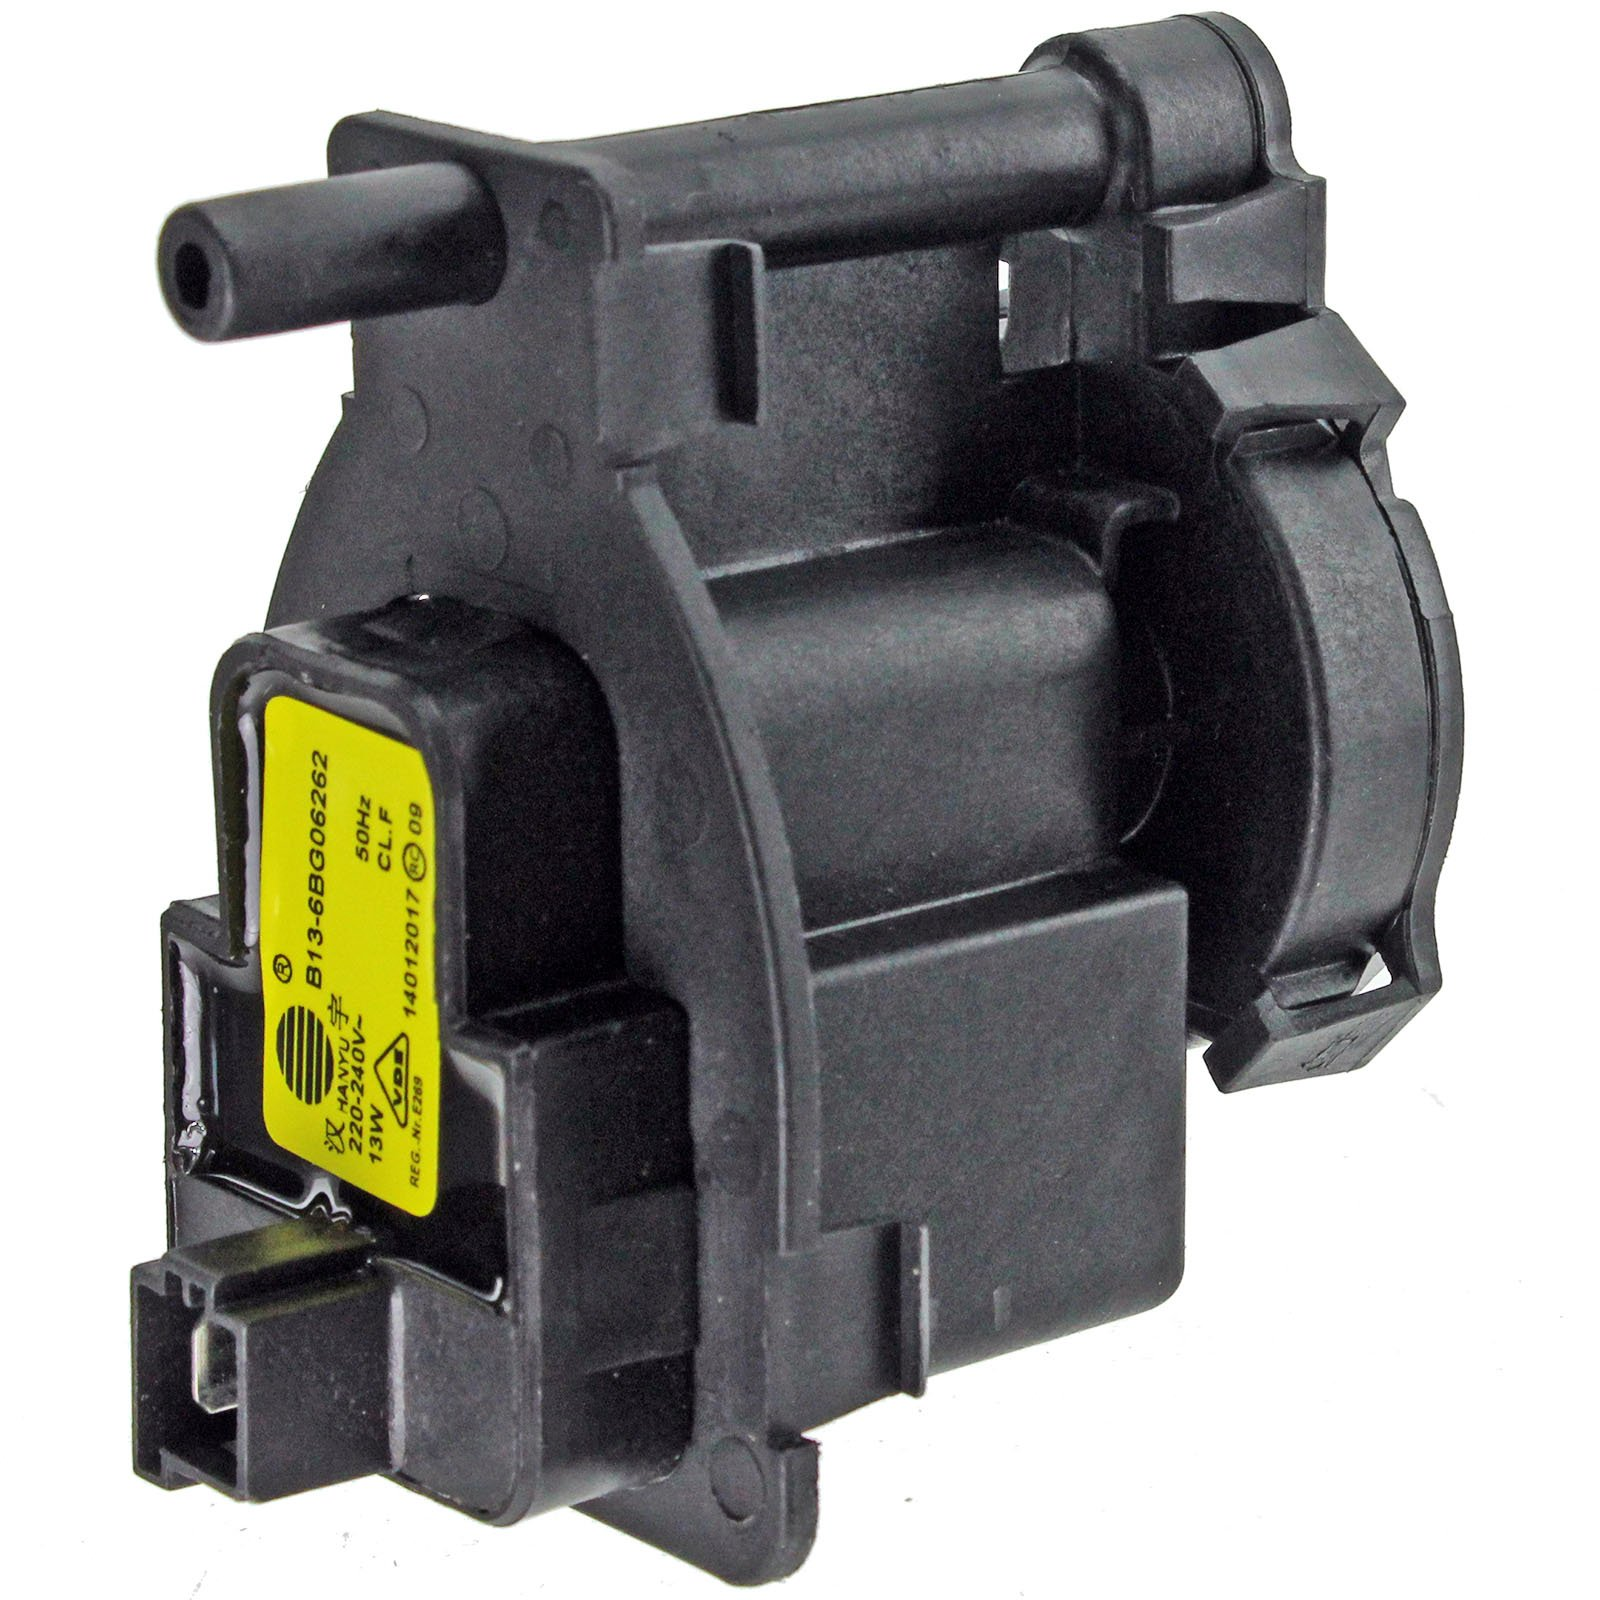 Water Pump Condenser Unit for Hotpoint Tumble Dryers